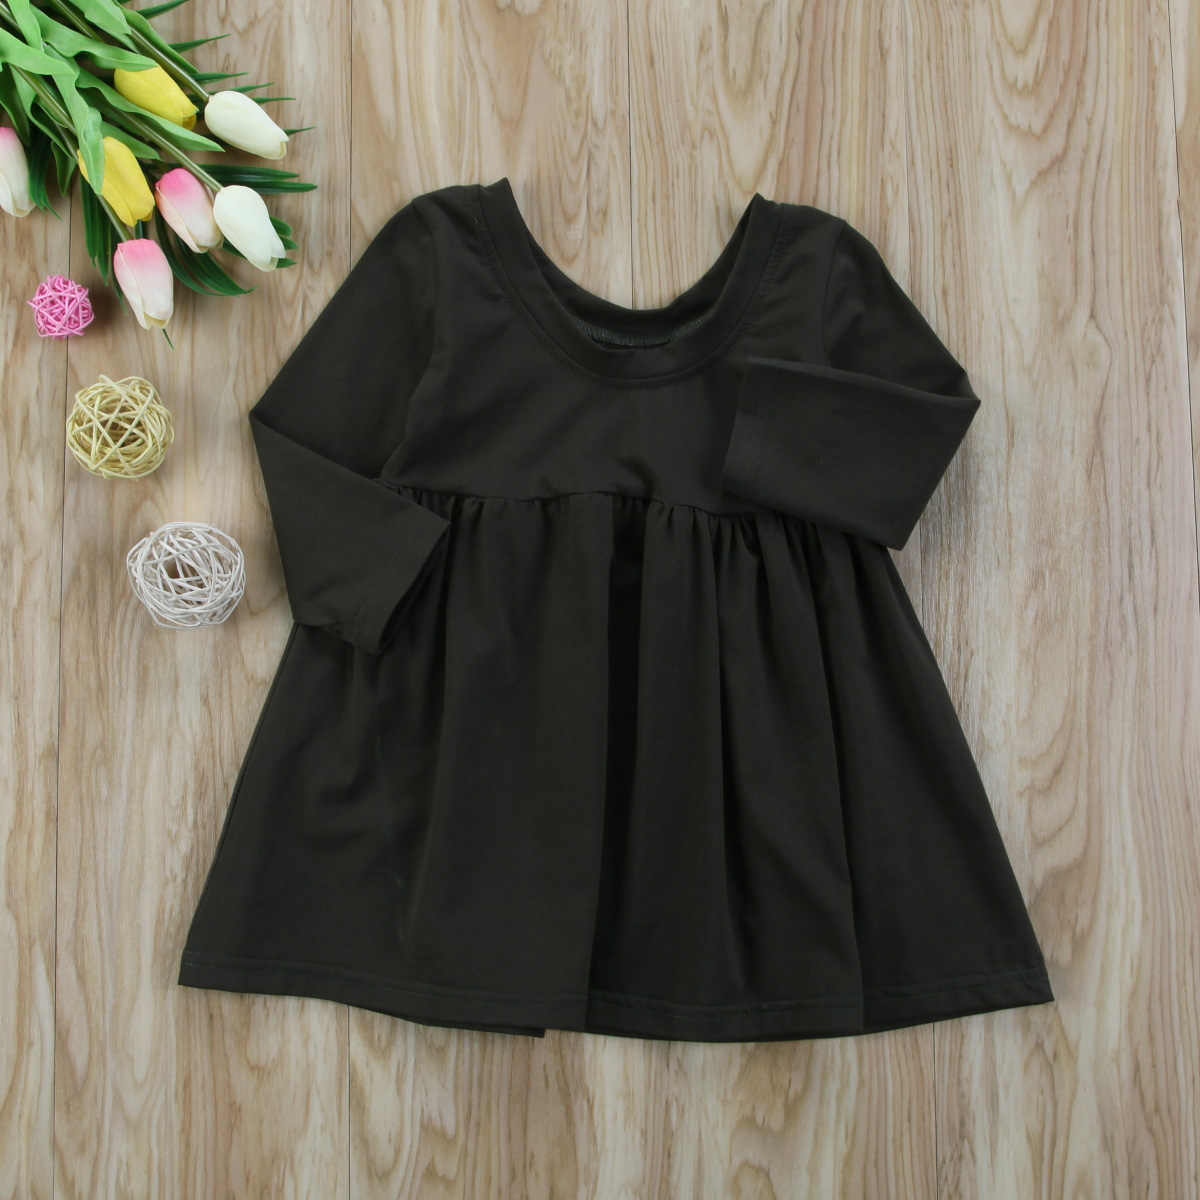 47f8e7461036 ... Toddler Baby Girl Kid Princess Backless Solid Simple Tutu Dress Xmas  Party New Fashion Dark green ...